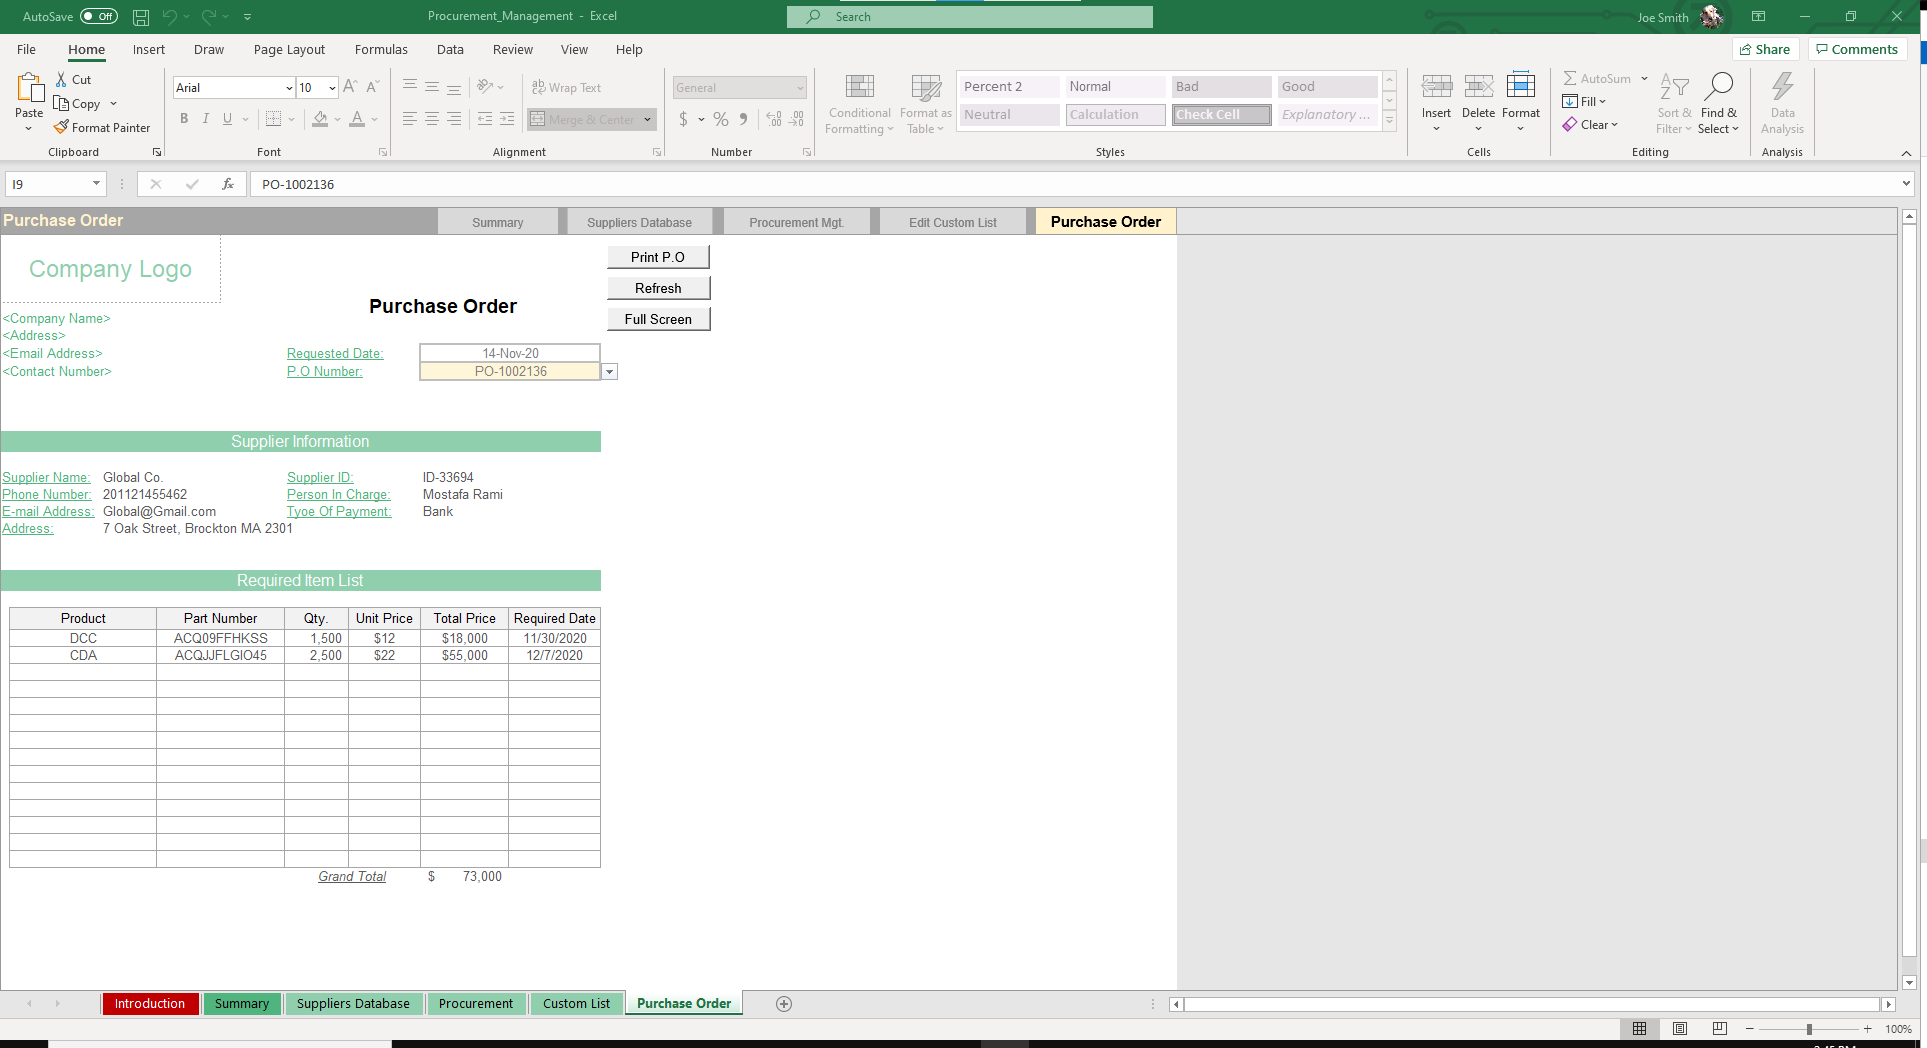 Automatically view and print out Purchase Orders in this sheet.